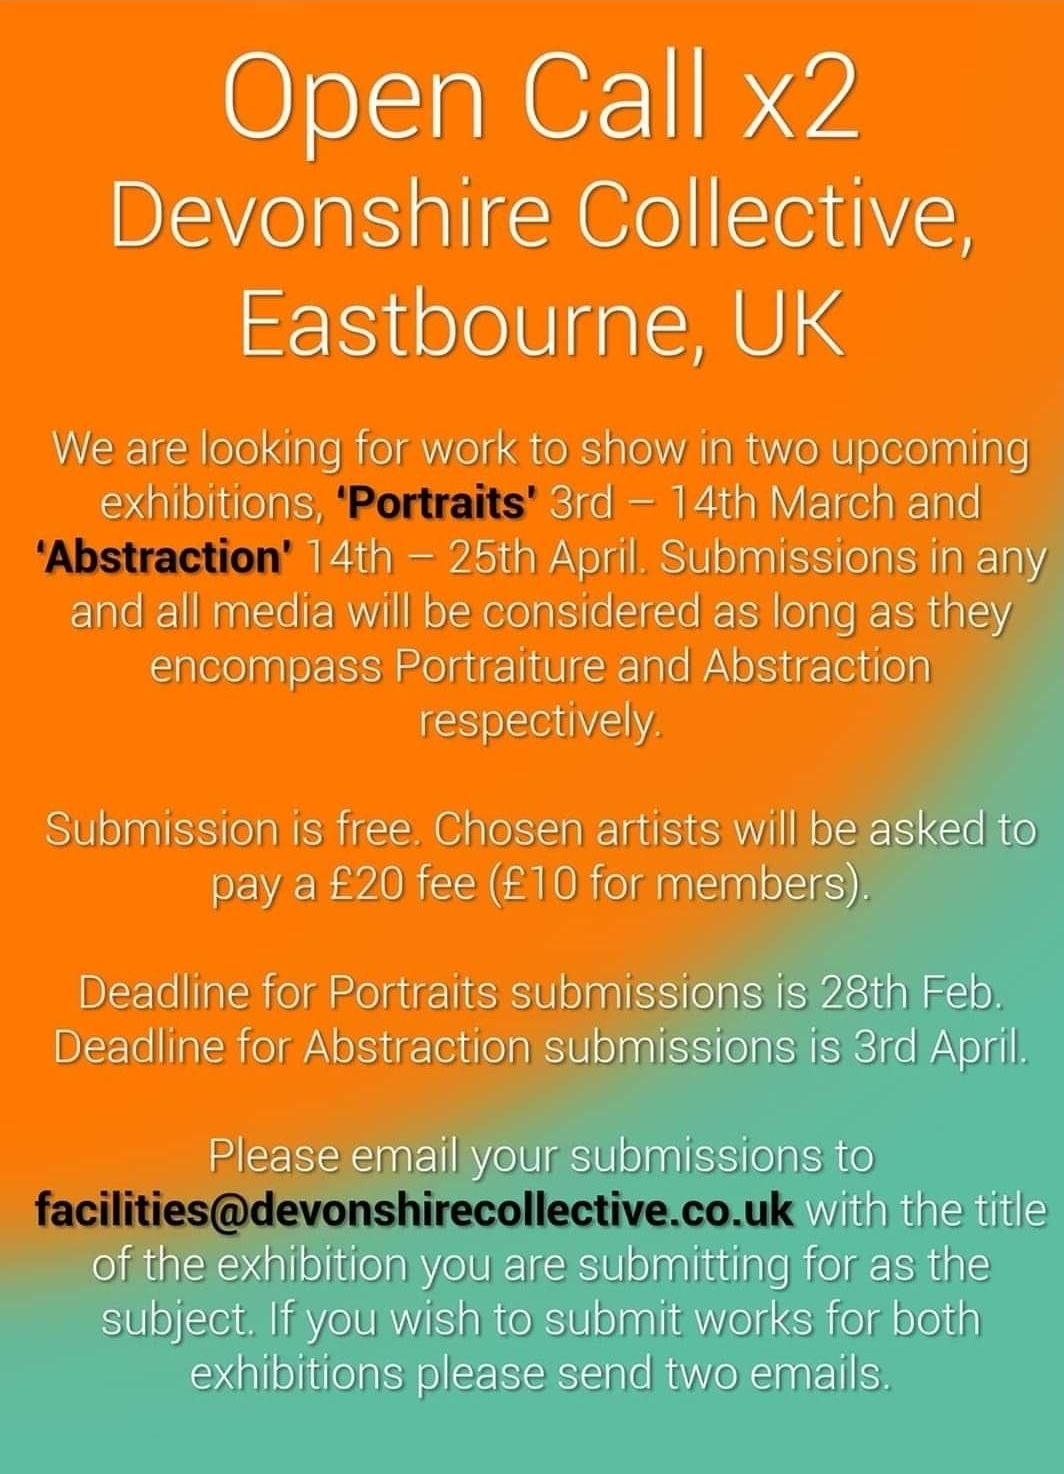 Two Open Calls @ Devonshire Collective!